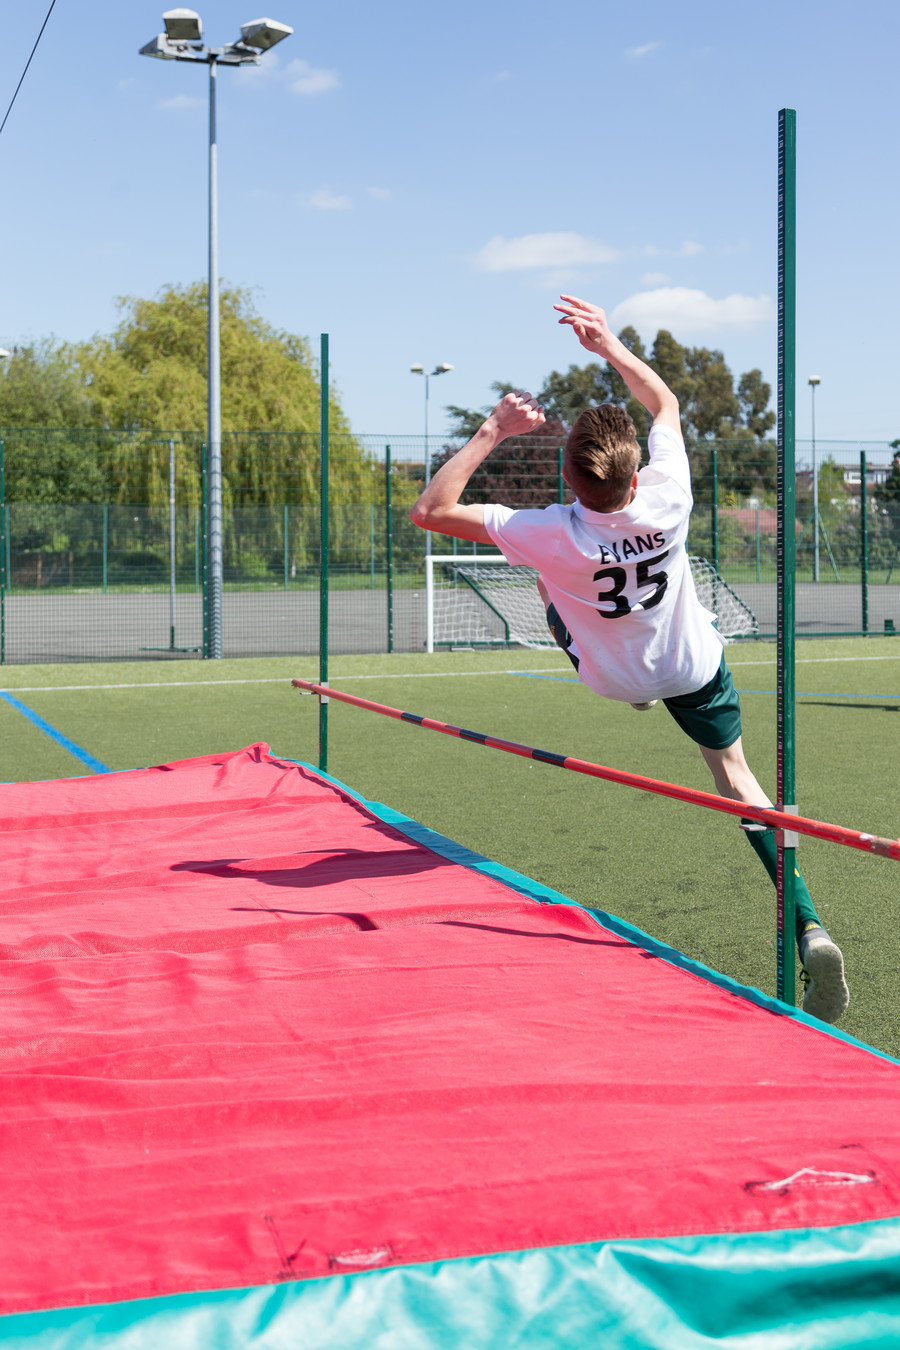 Student doing the high jump